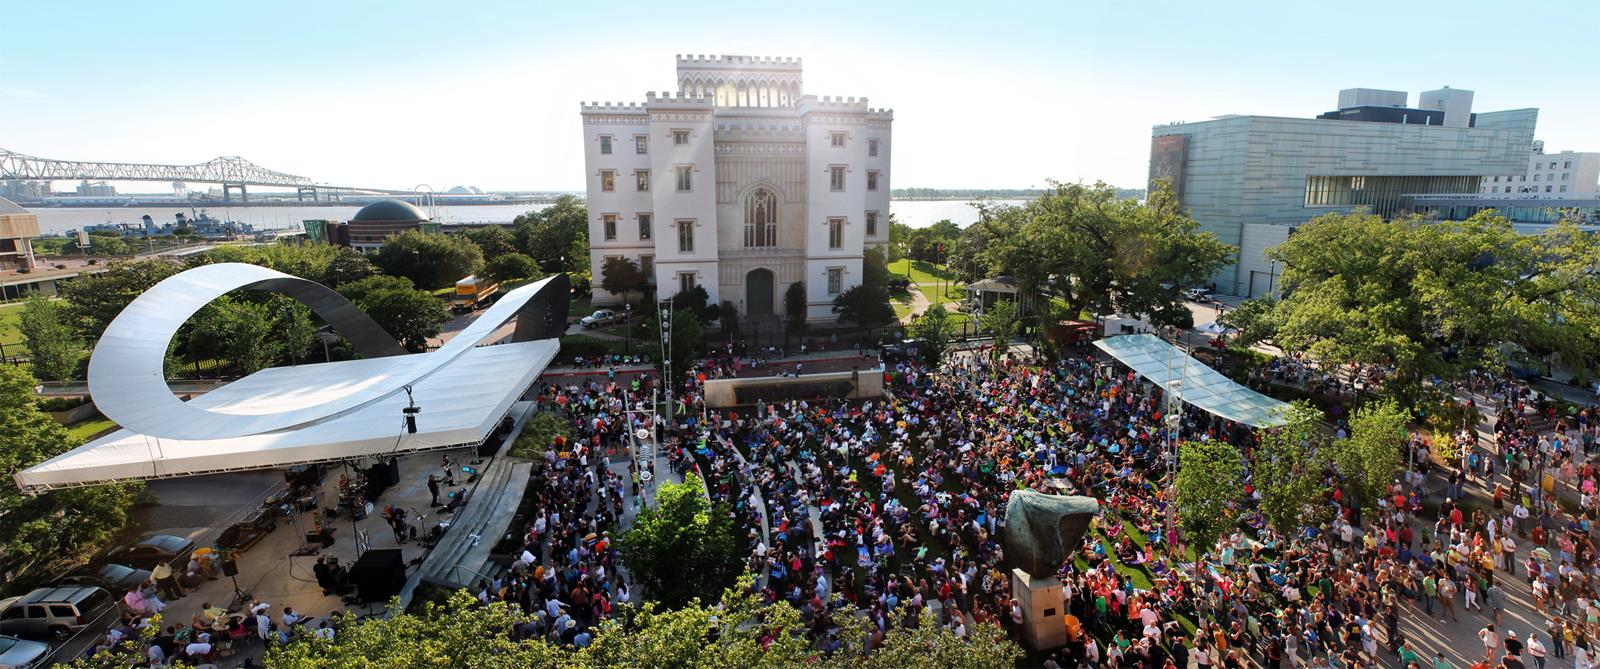 Outdoor Concert at Old Louisiana Capitol